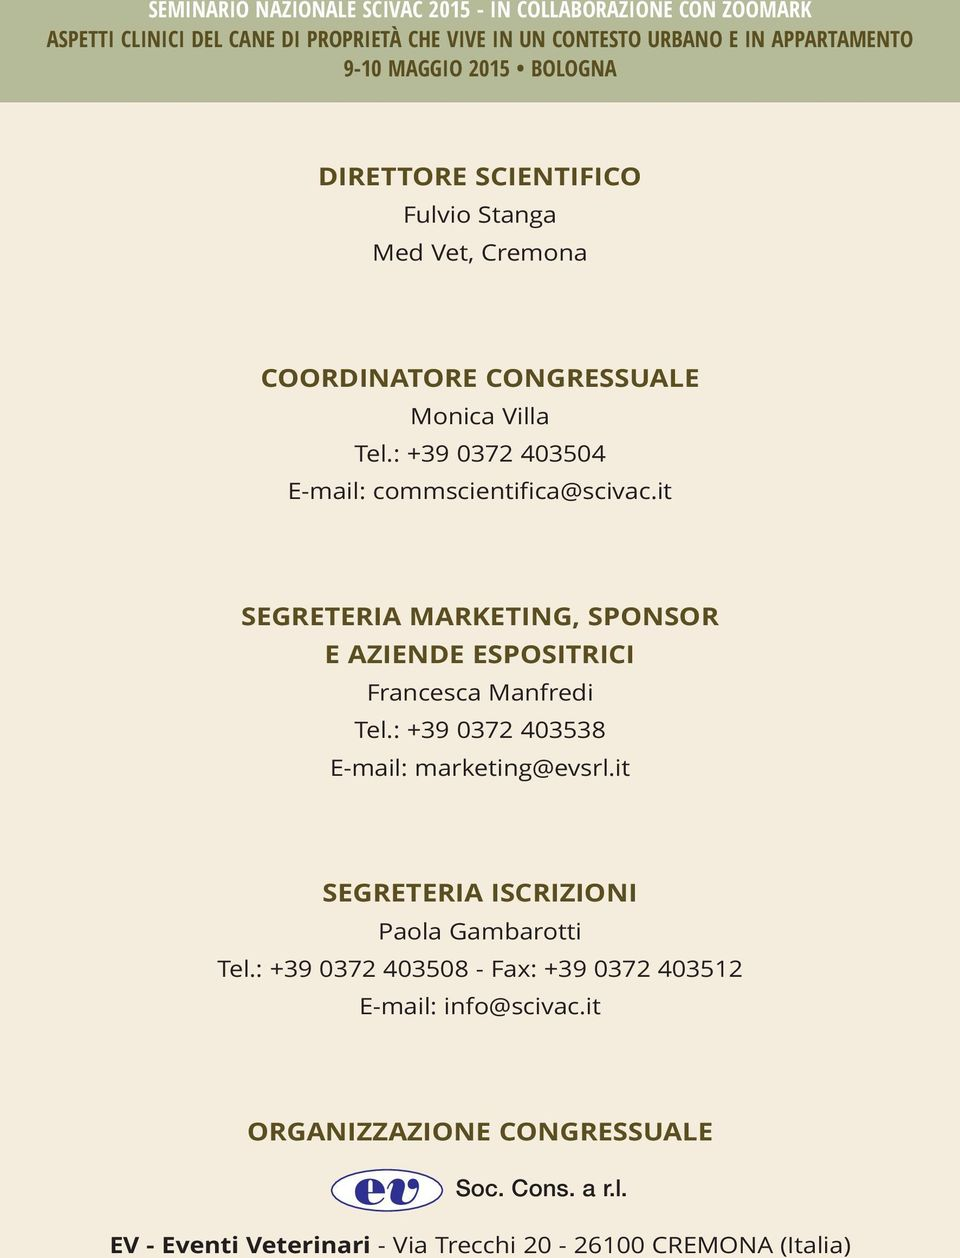 it SEGRETERIA MARKETING, SPONSOR E AZIENDE ESPOSITRICI Francesca Manfredi Tel.: +39 0372 403538 E-mail: marketing@evsrl.